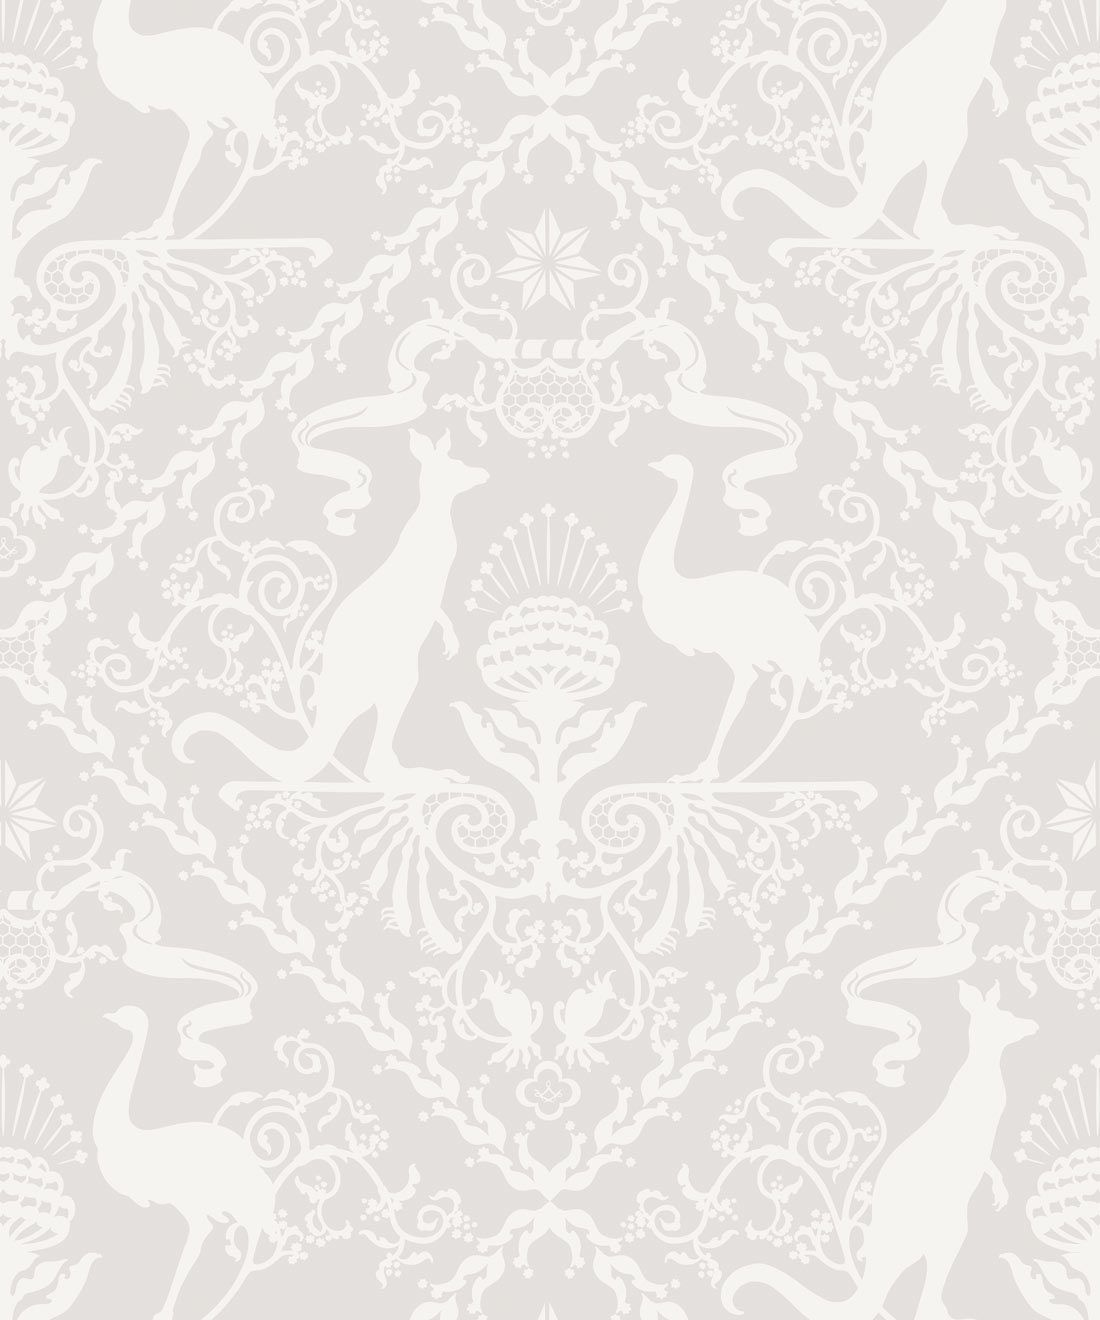 In Australia We Trust Bondi • Australian Wallpaper • Australian Coat of Arms • Milton & King Europe • Grey Wallpaper